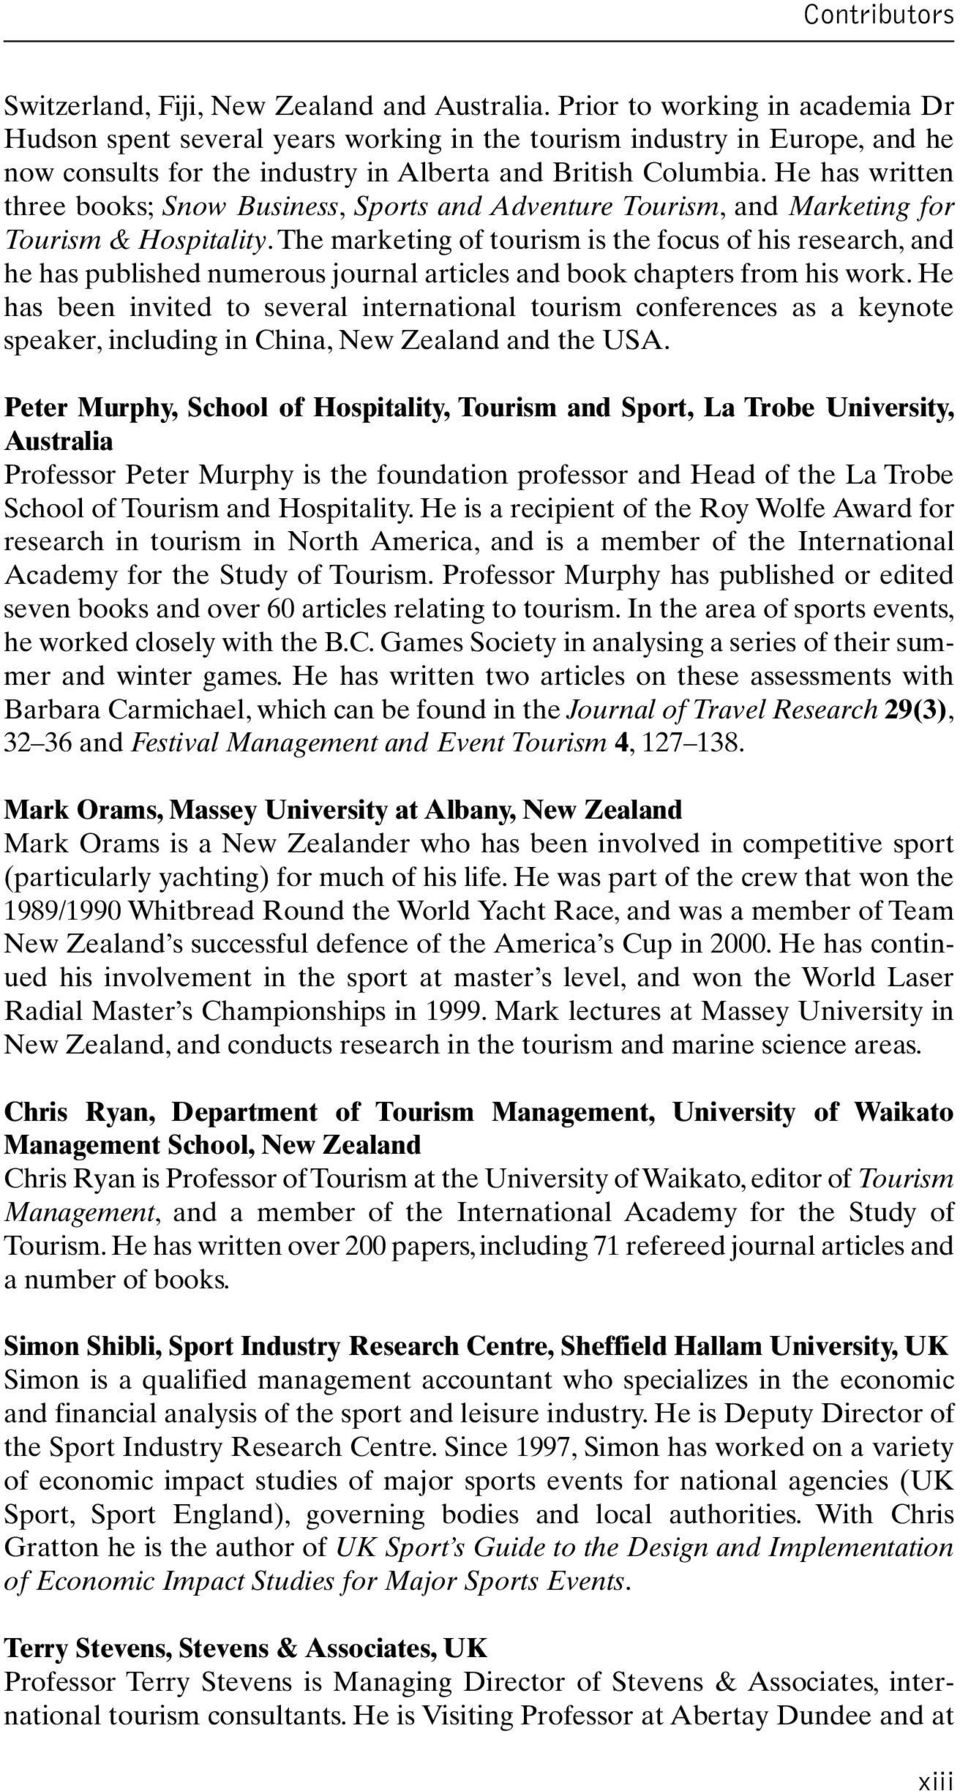 sports marketing research articles